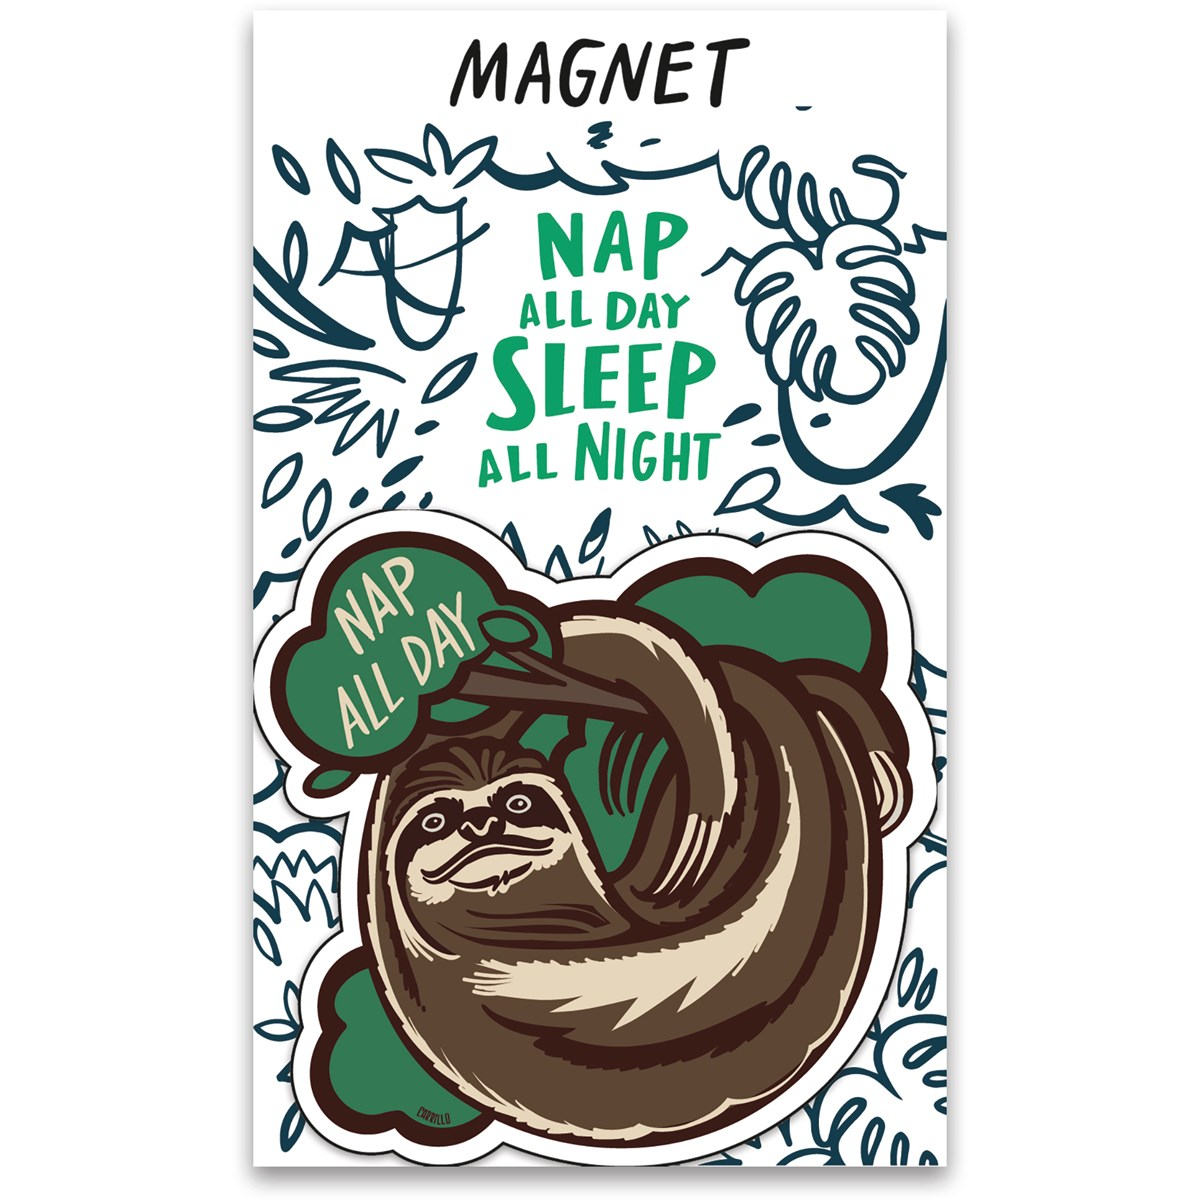 "Magnet - Nap All Day Sleep All Night - 3"" x 3"", Card: 3"" x 5"" - Magnet, Paper"